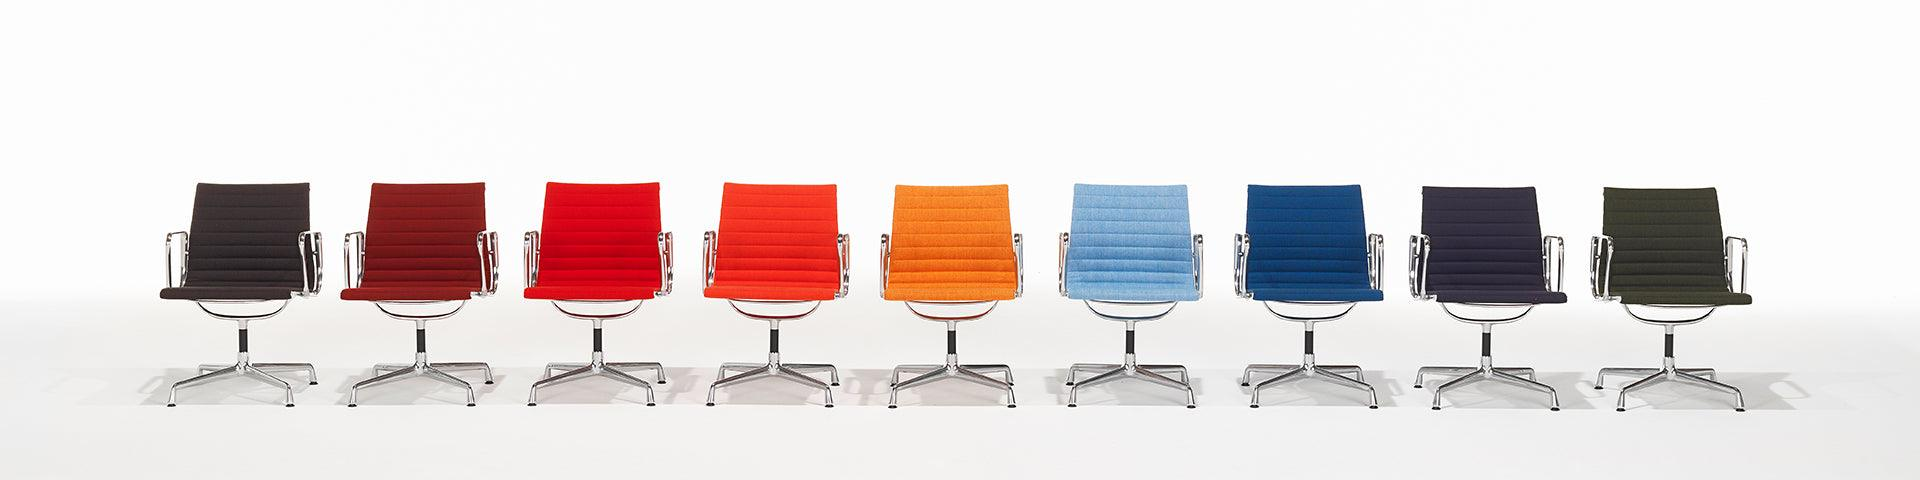 Eames EA 104 chair, 1958